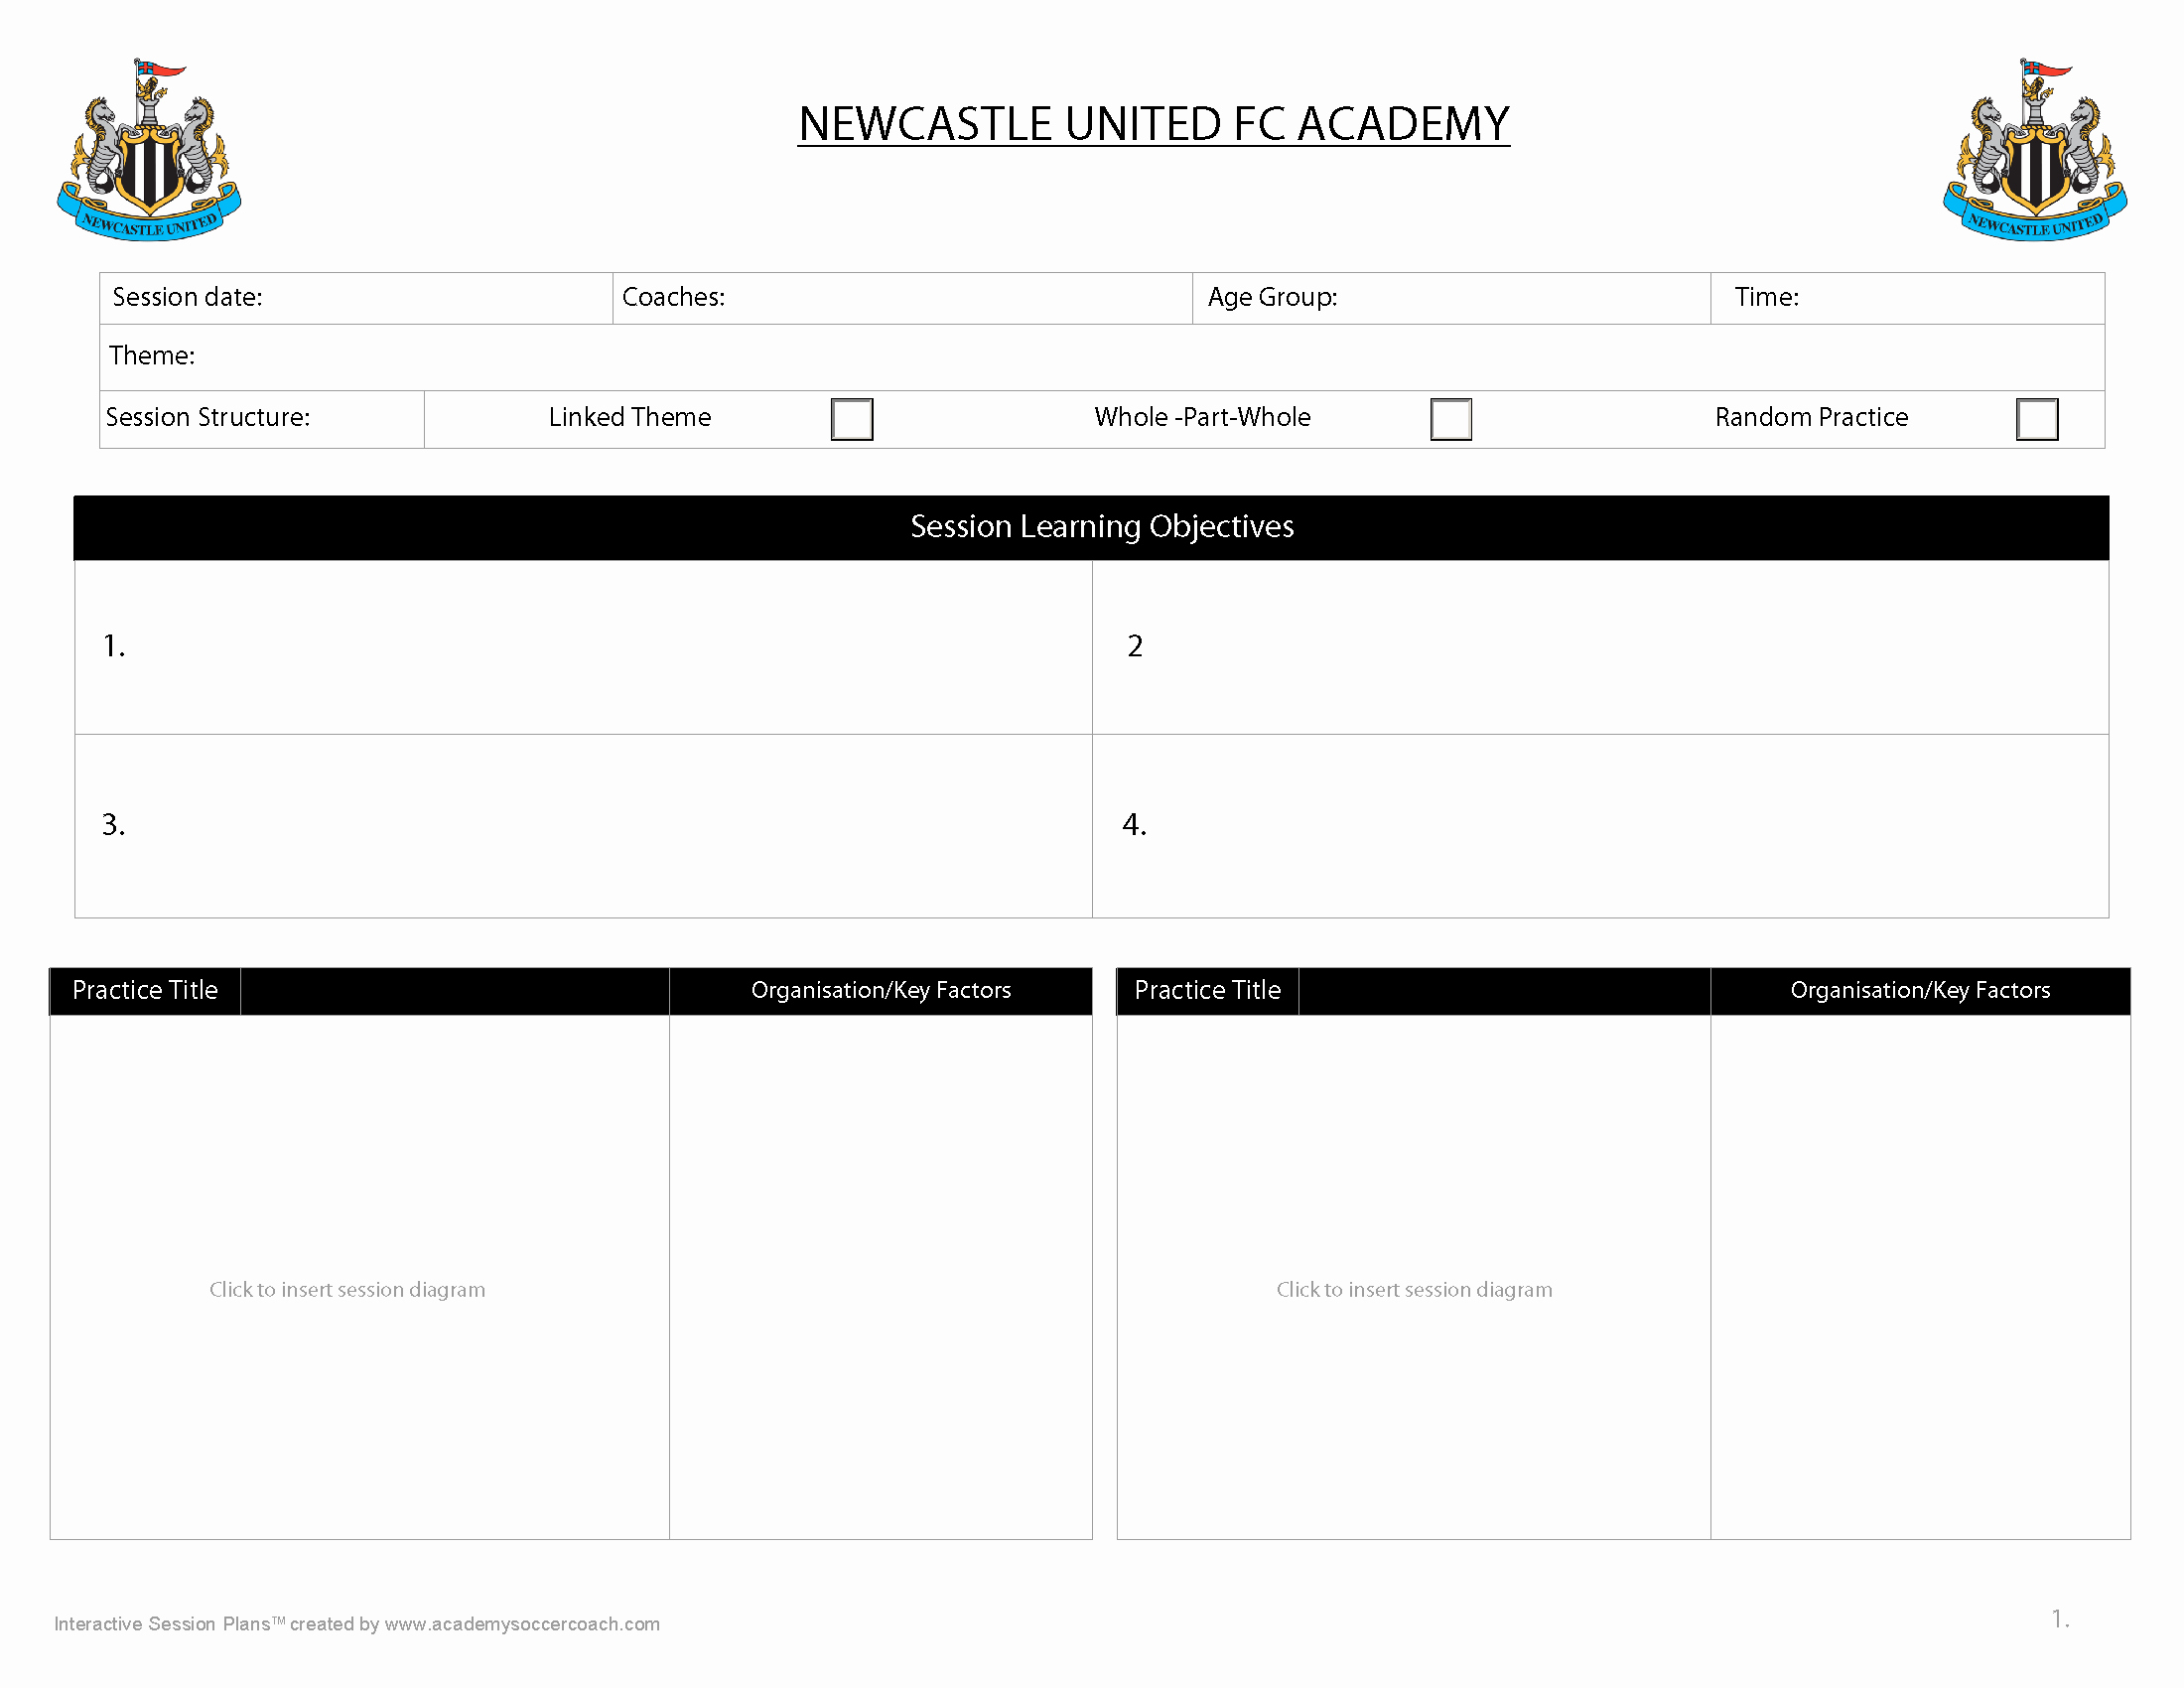 Football Session Plan Template Luxury Customisation Services Academy soccer Coach